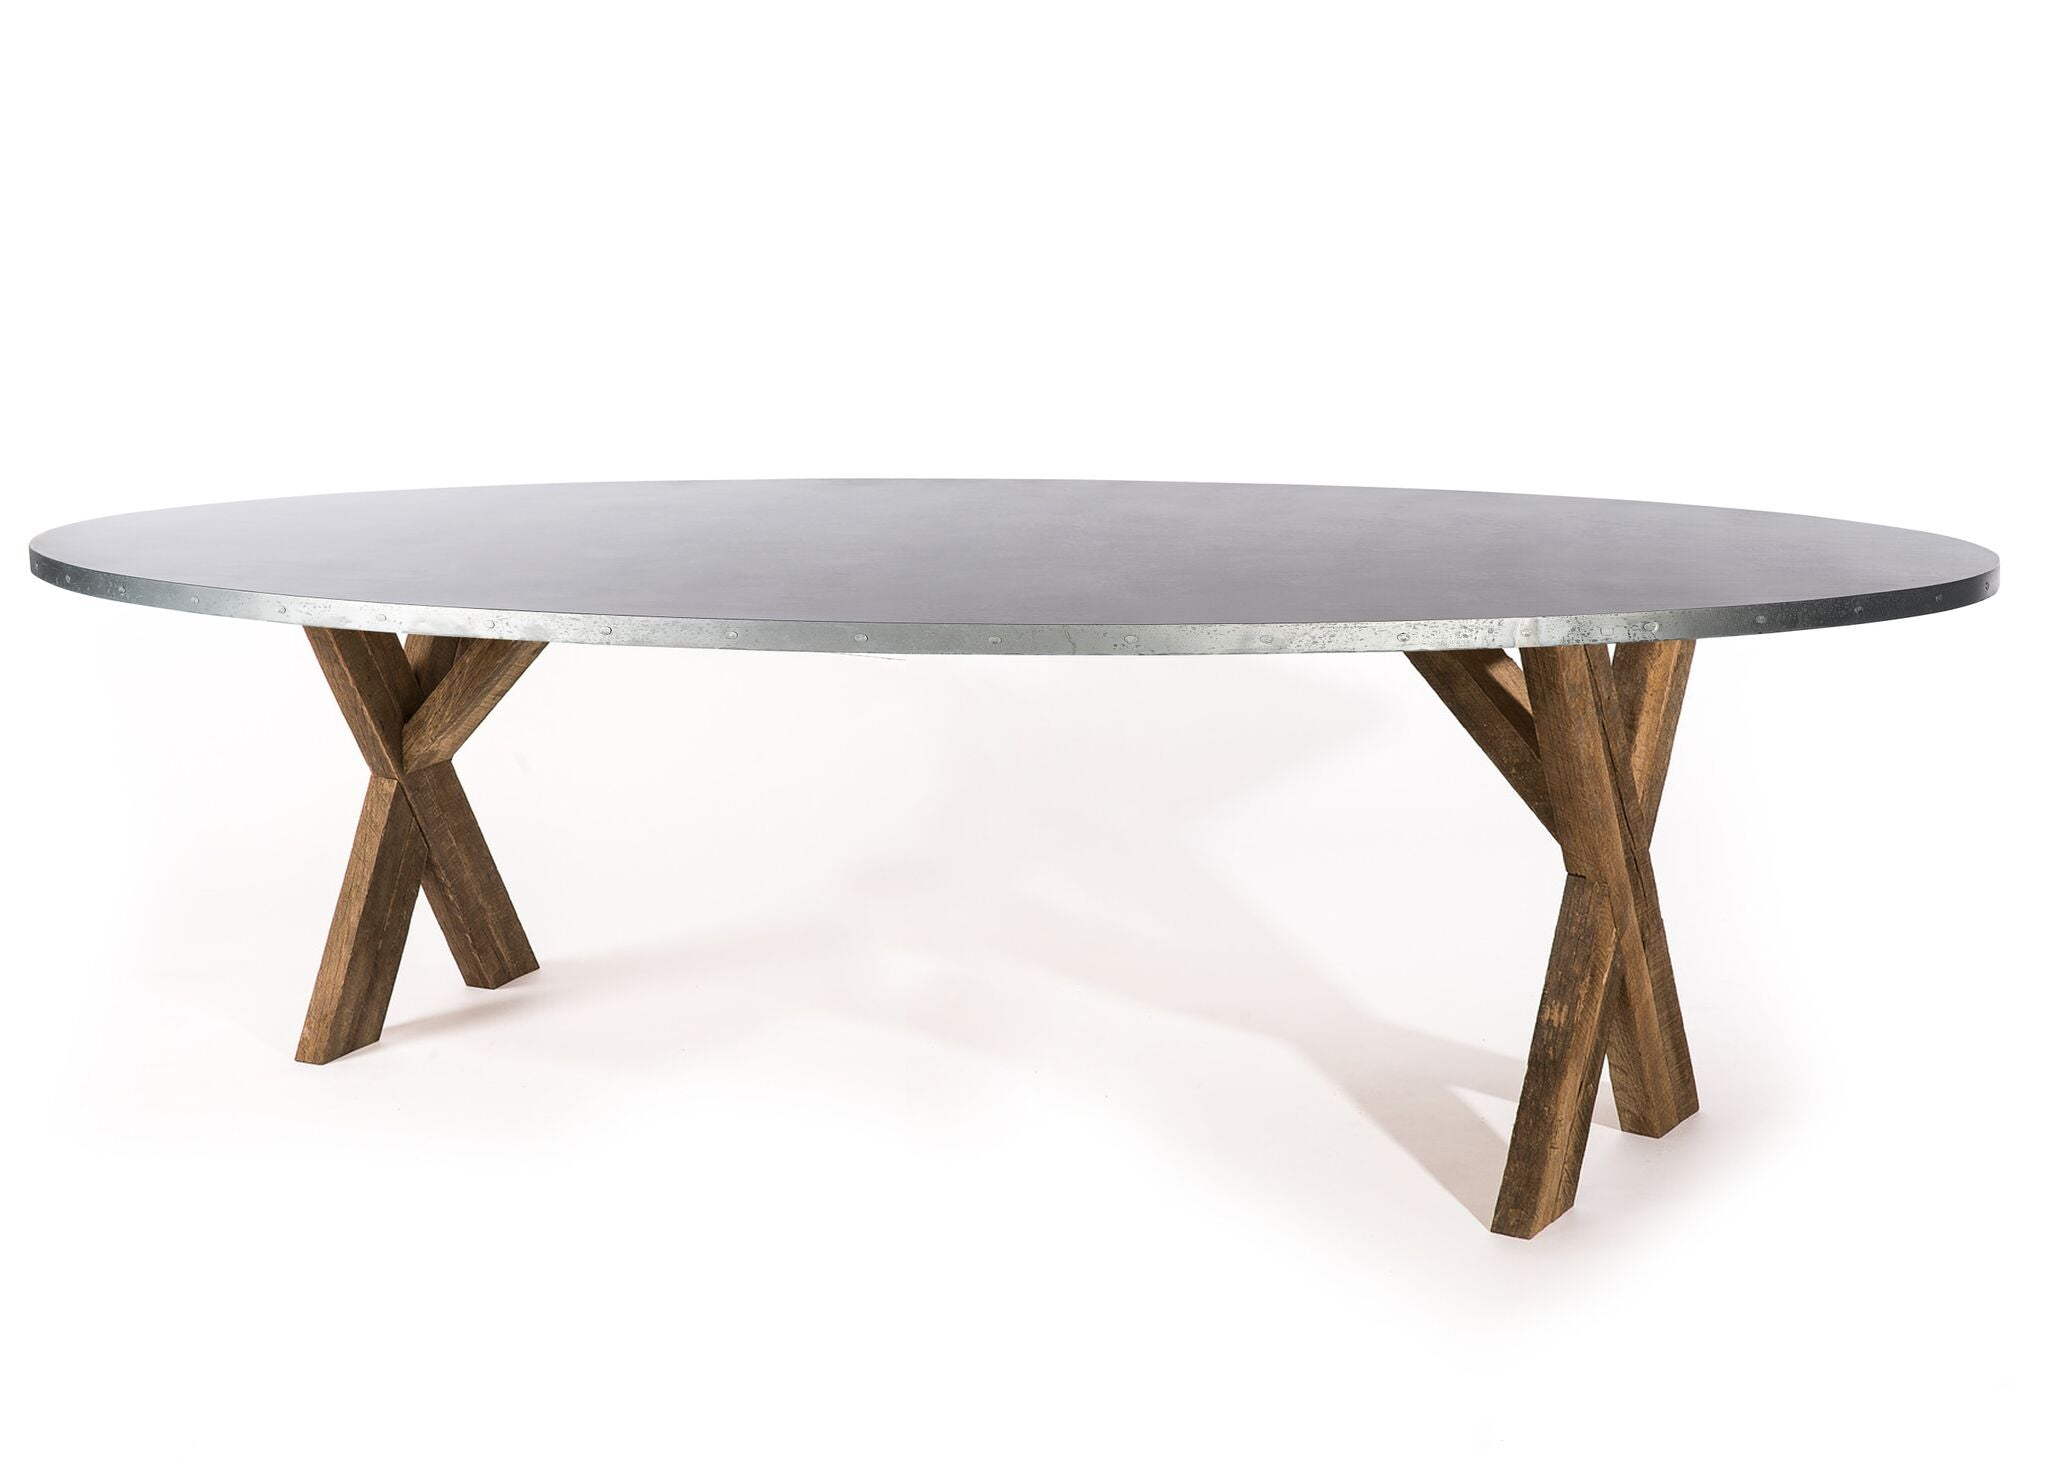 "Zinc Oval Tables | X Base Trestle Table | BLACKENED BRONZE | Weathered Grey on Reclaimed Oak | CUSTOM SIZE L 120 W 43 H 30 | 1.5"" Standard 